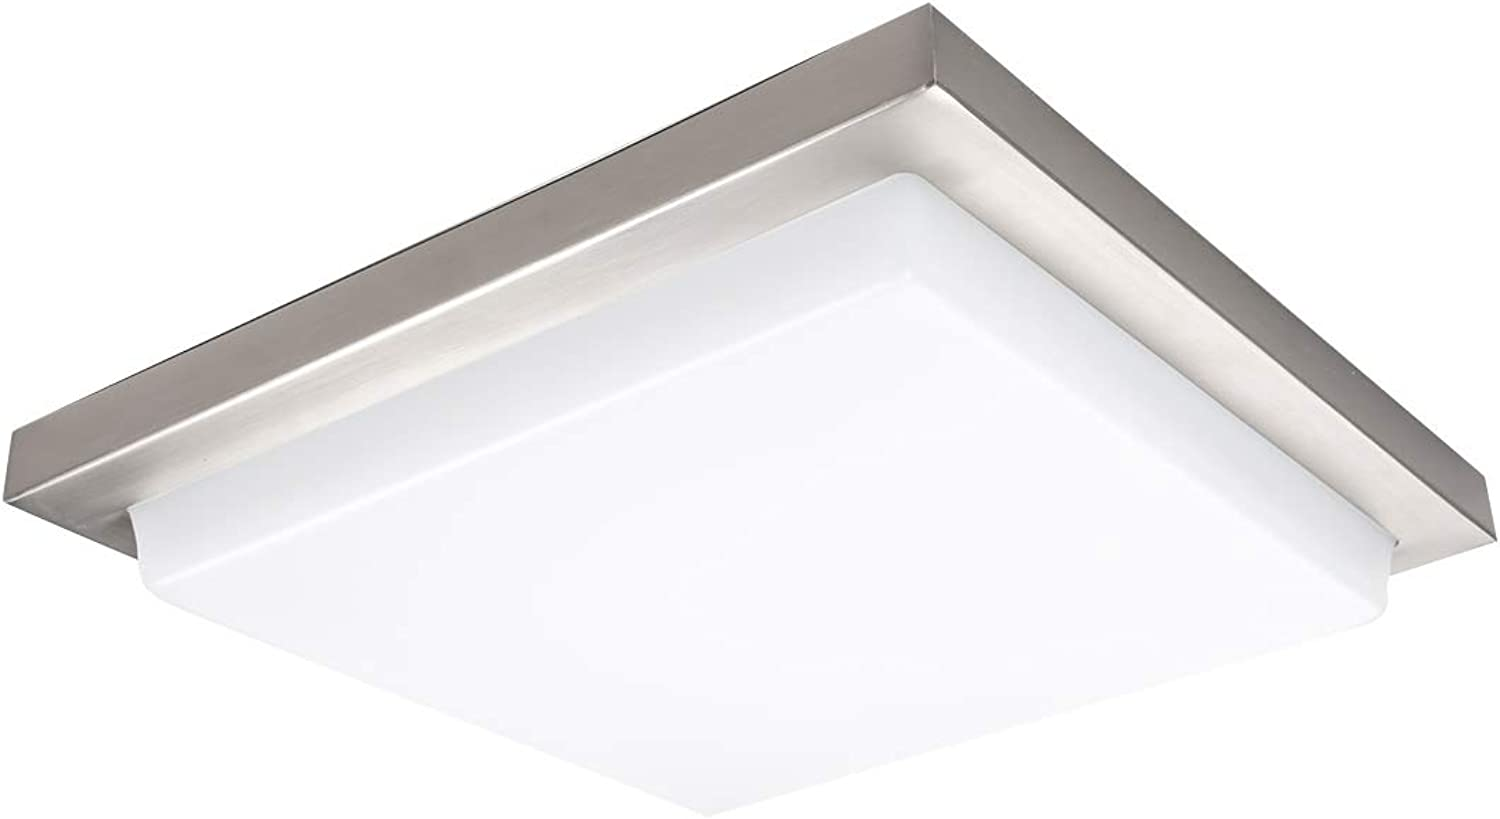 WAC Lighting FM-180118-35-BN Metro Energy Star Square LED Flush Mount, 18 Inches, Brushed Nickel